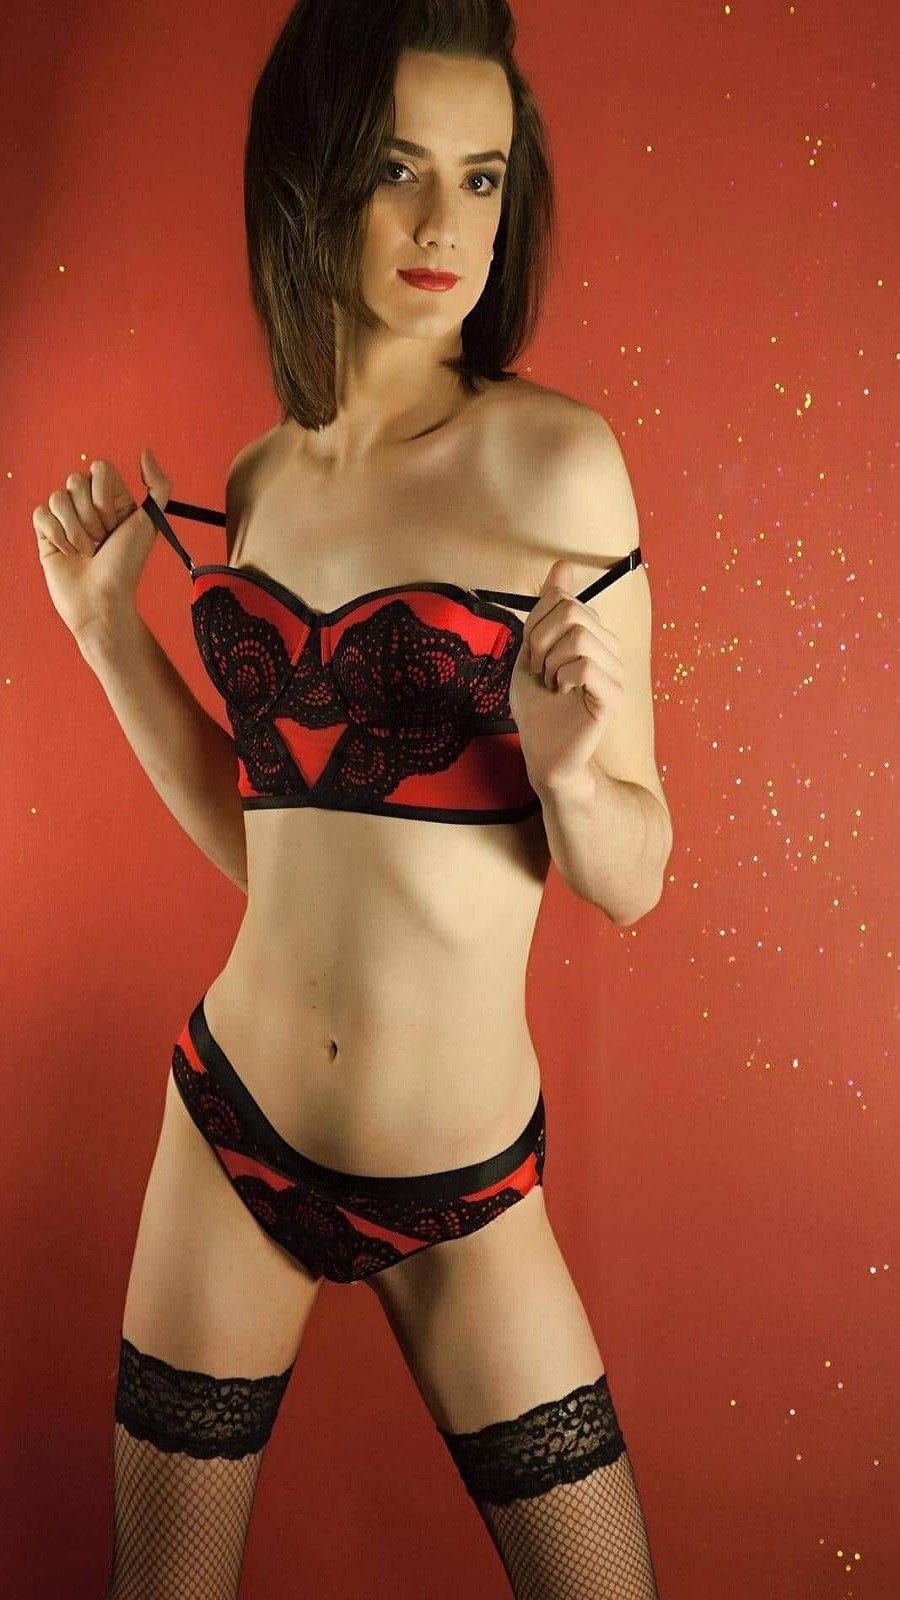 If you are looking for the perfect companion tonight give us a call on 07399733096 to book Lucy for the best night of your life.